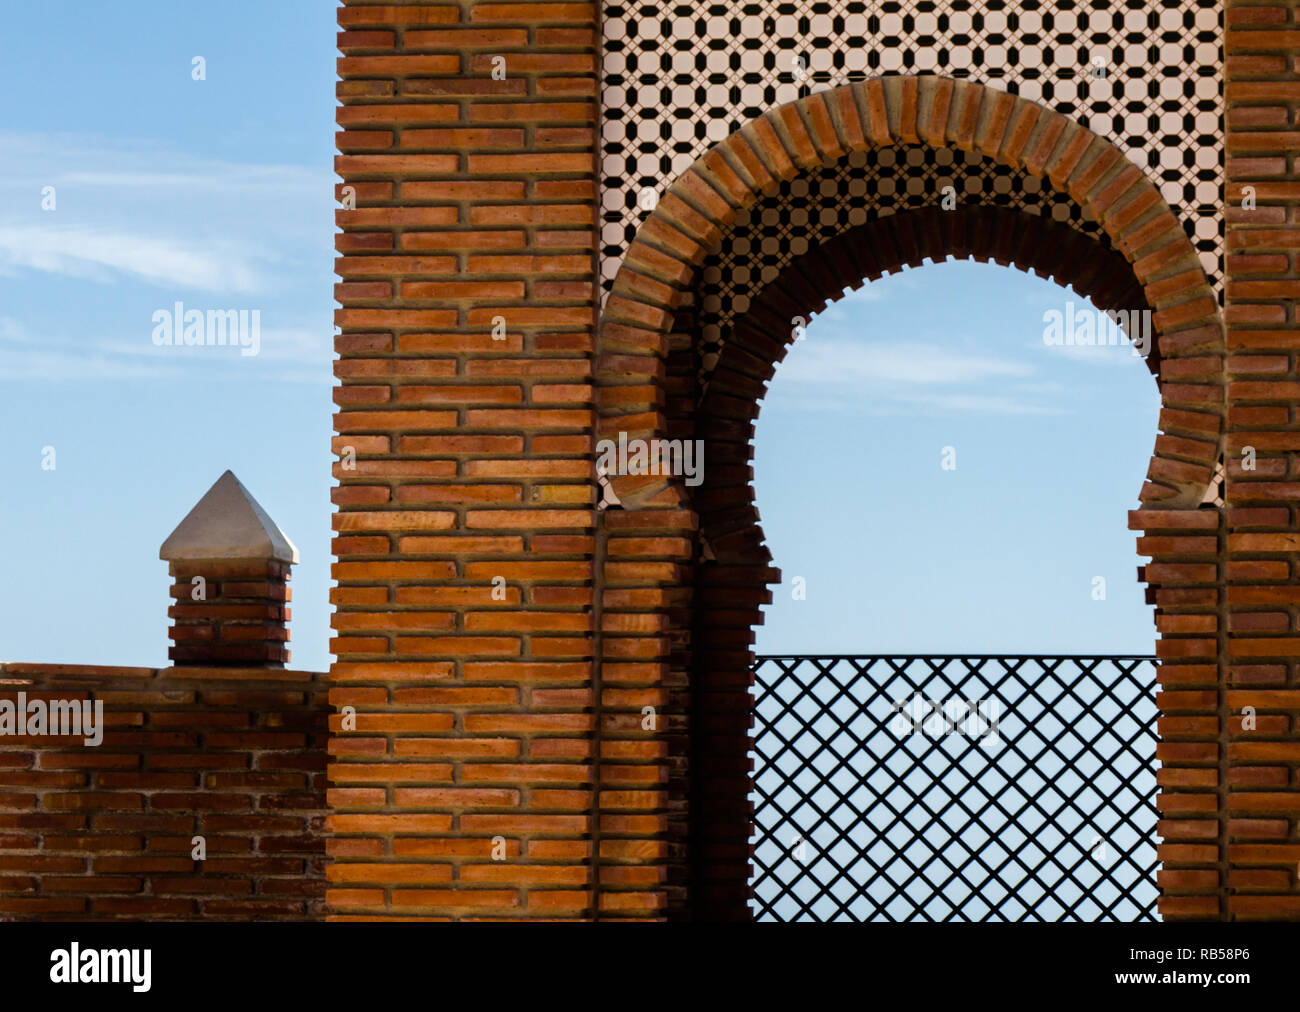 Typical Moorish defensive walls in a small town of Andalusia, a historic element of architecture, Spain - Stock Image